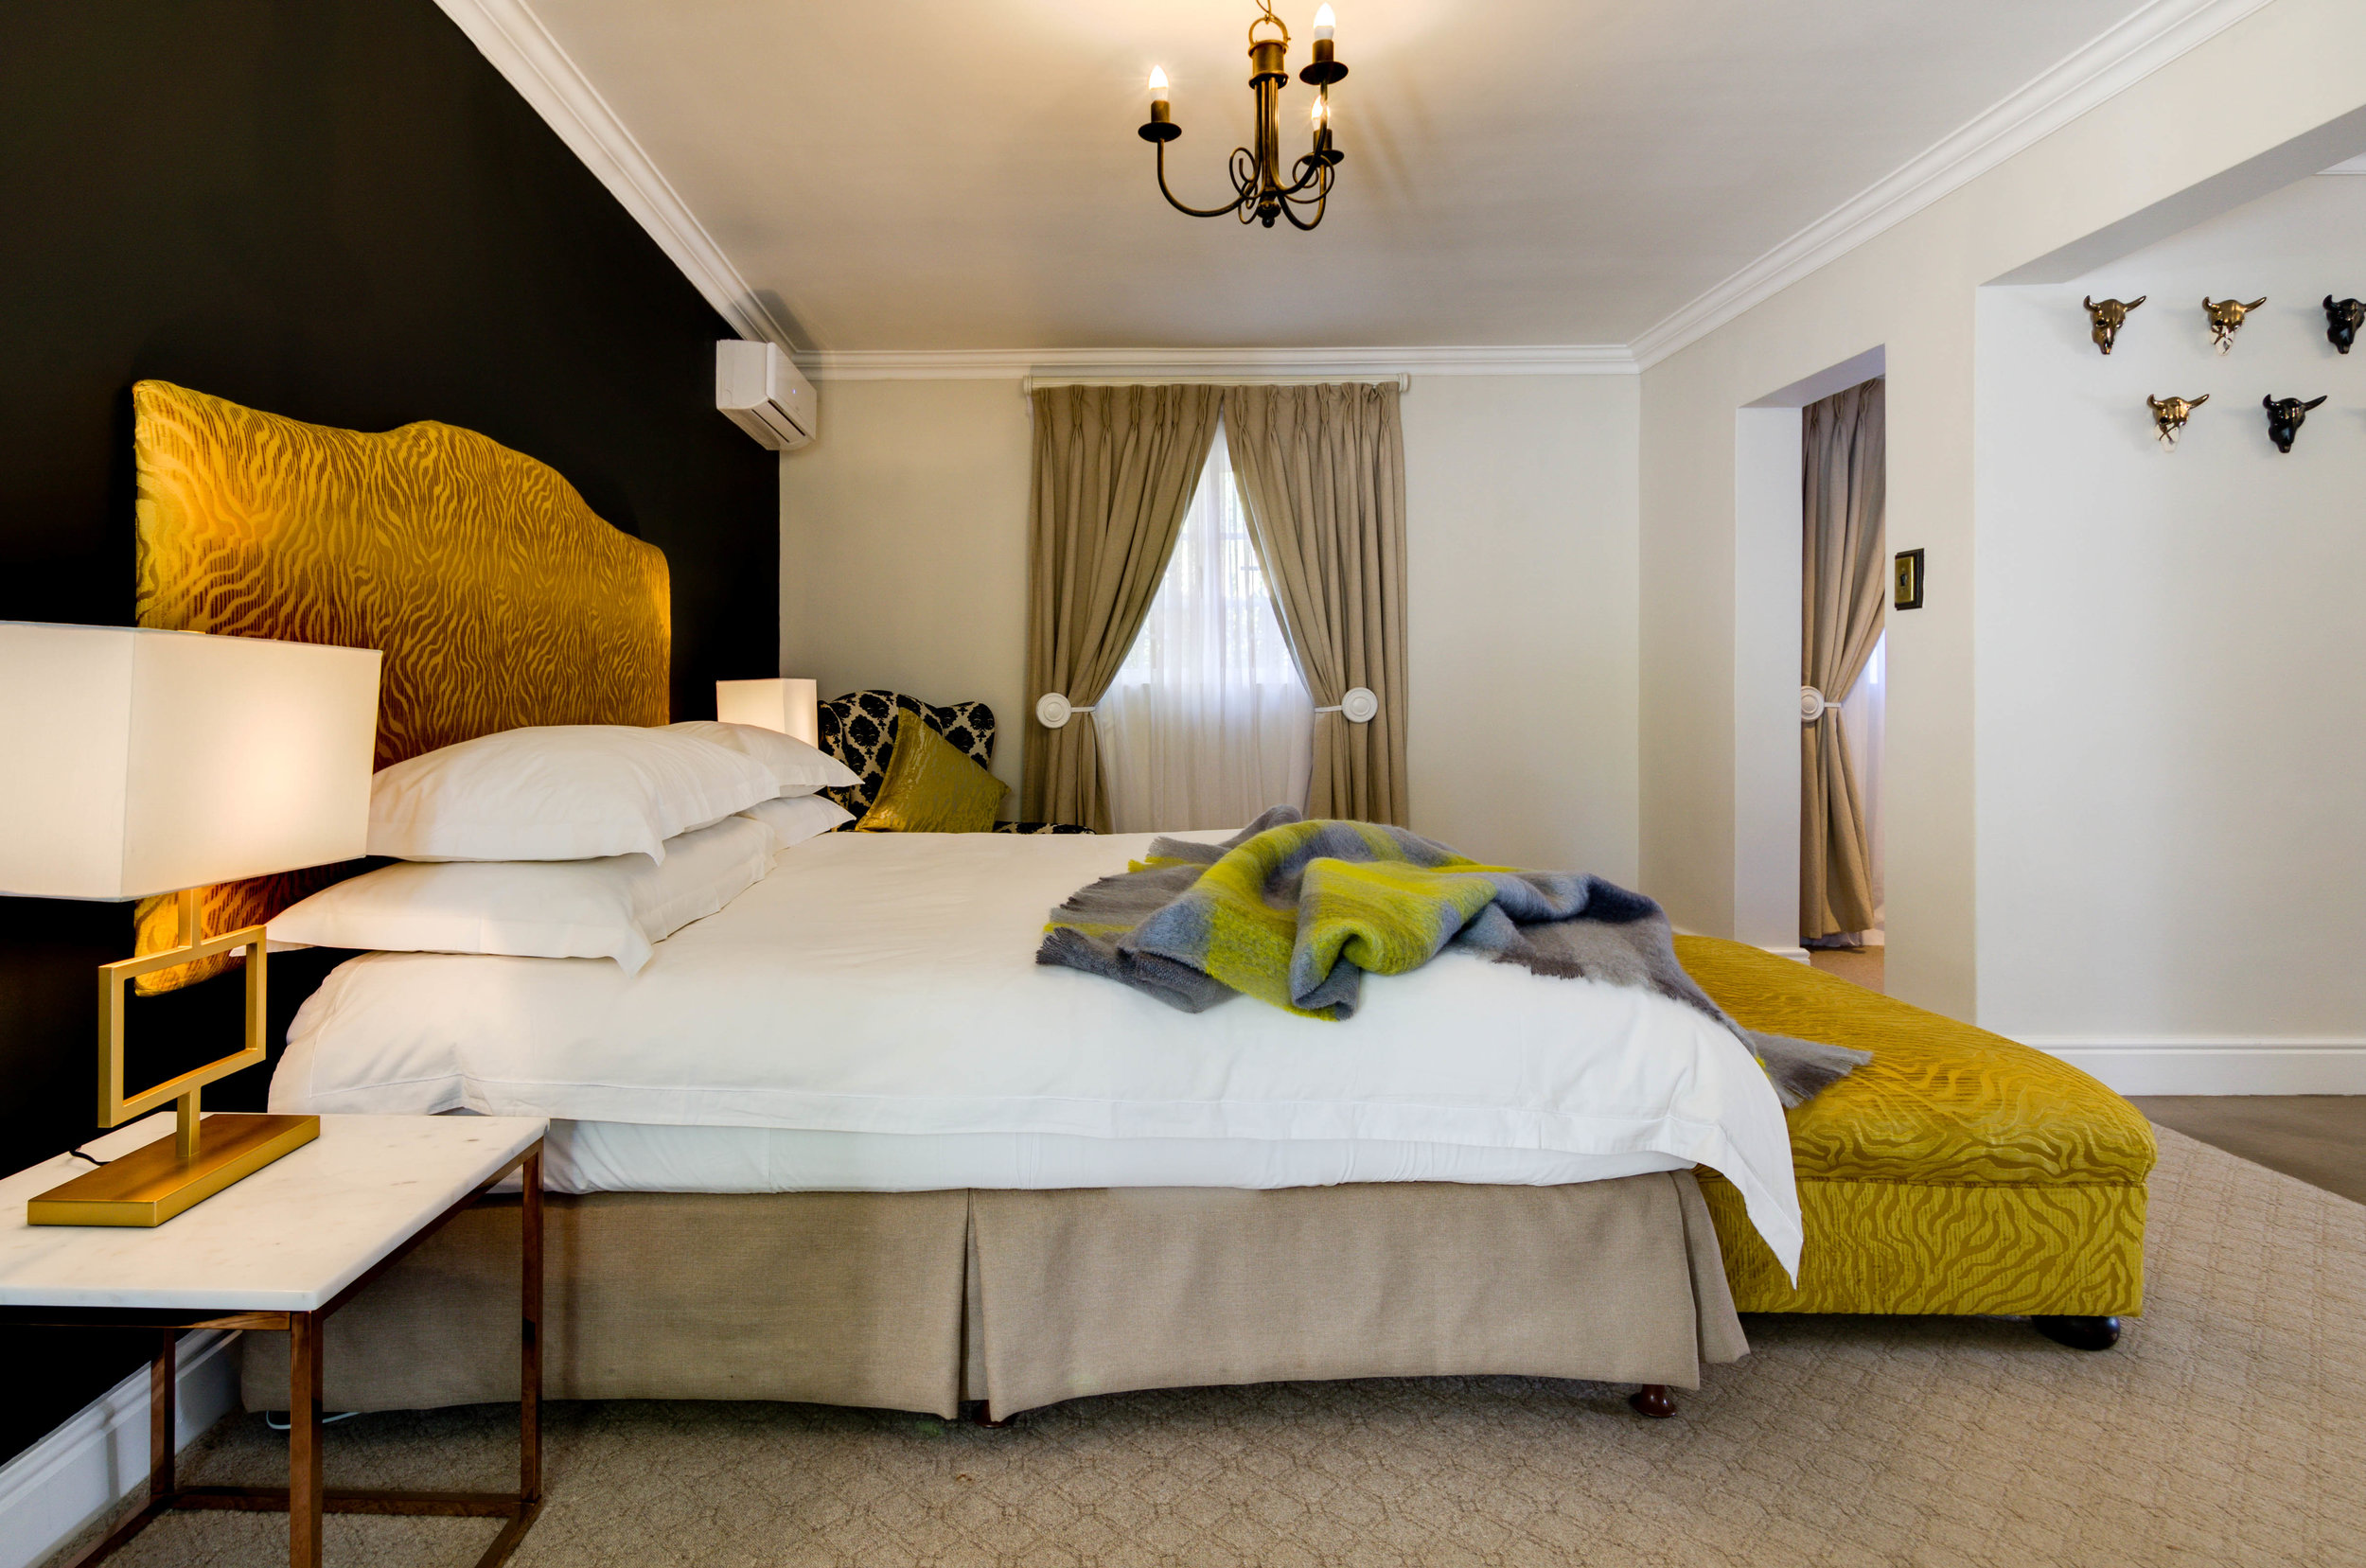 Elegantly appointed rooms at The Post House offer luxury and comfort for an incredible getaway in Greyton.